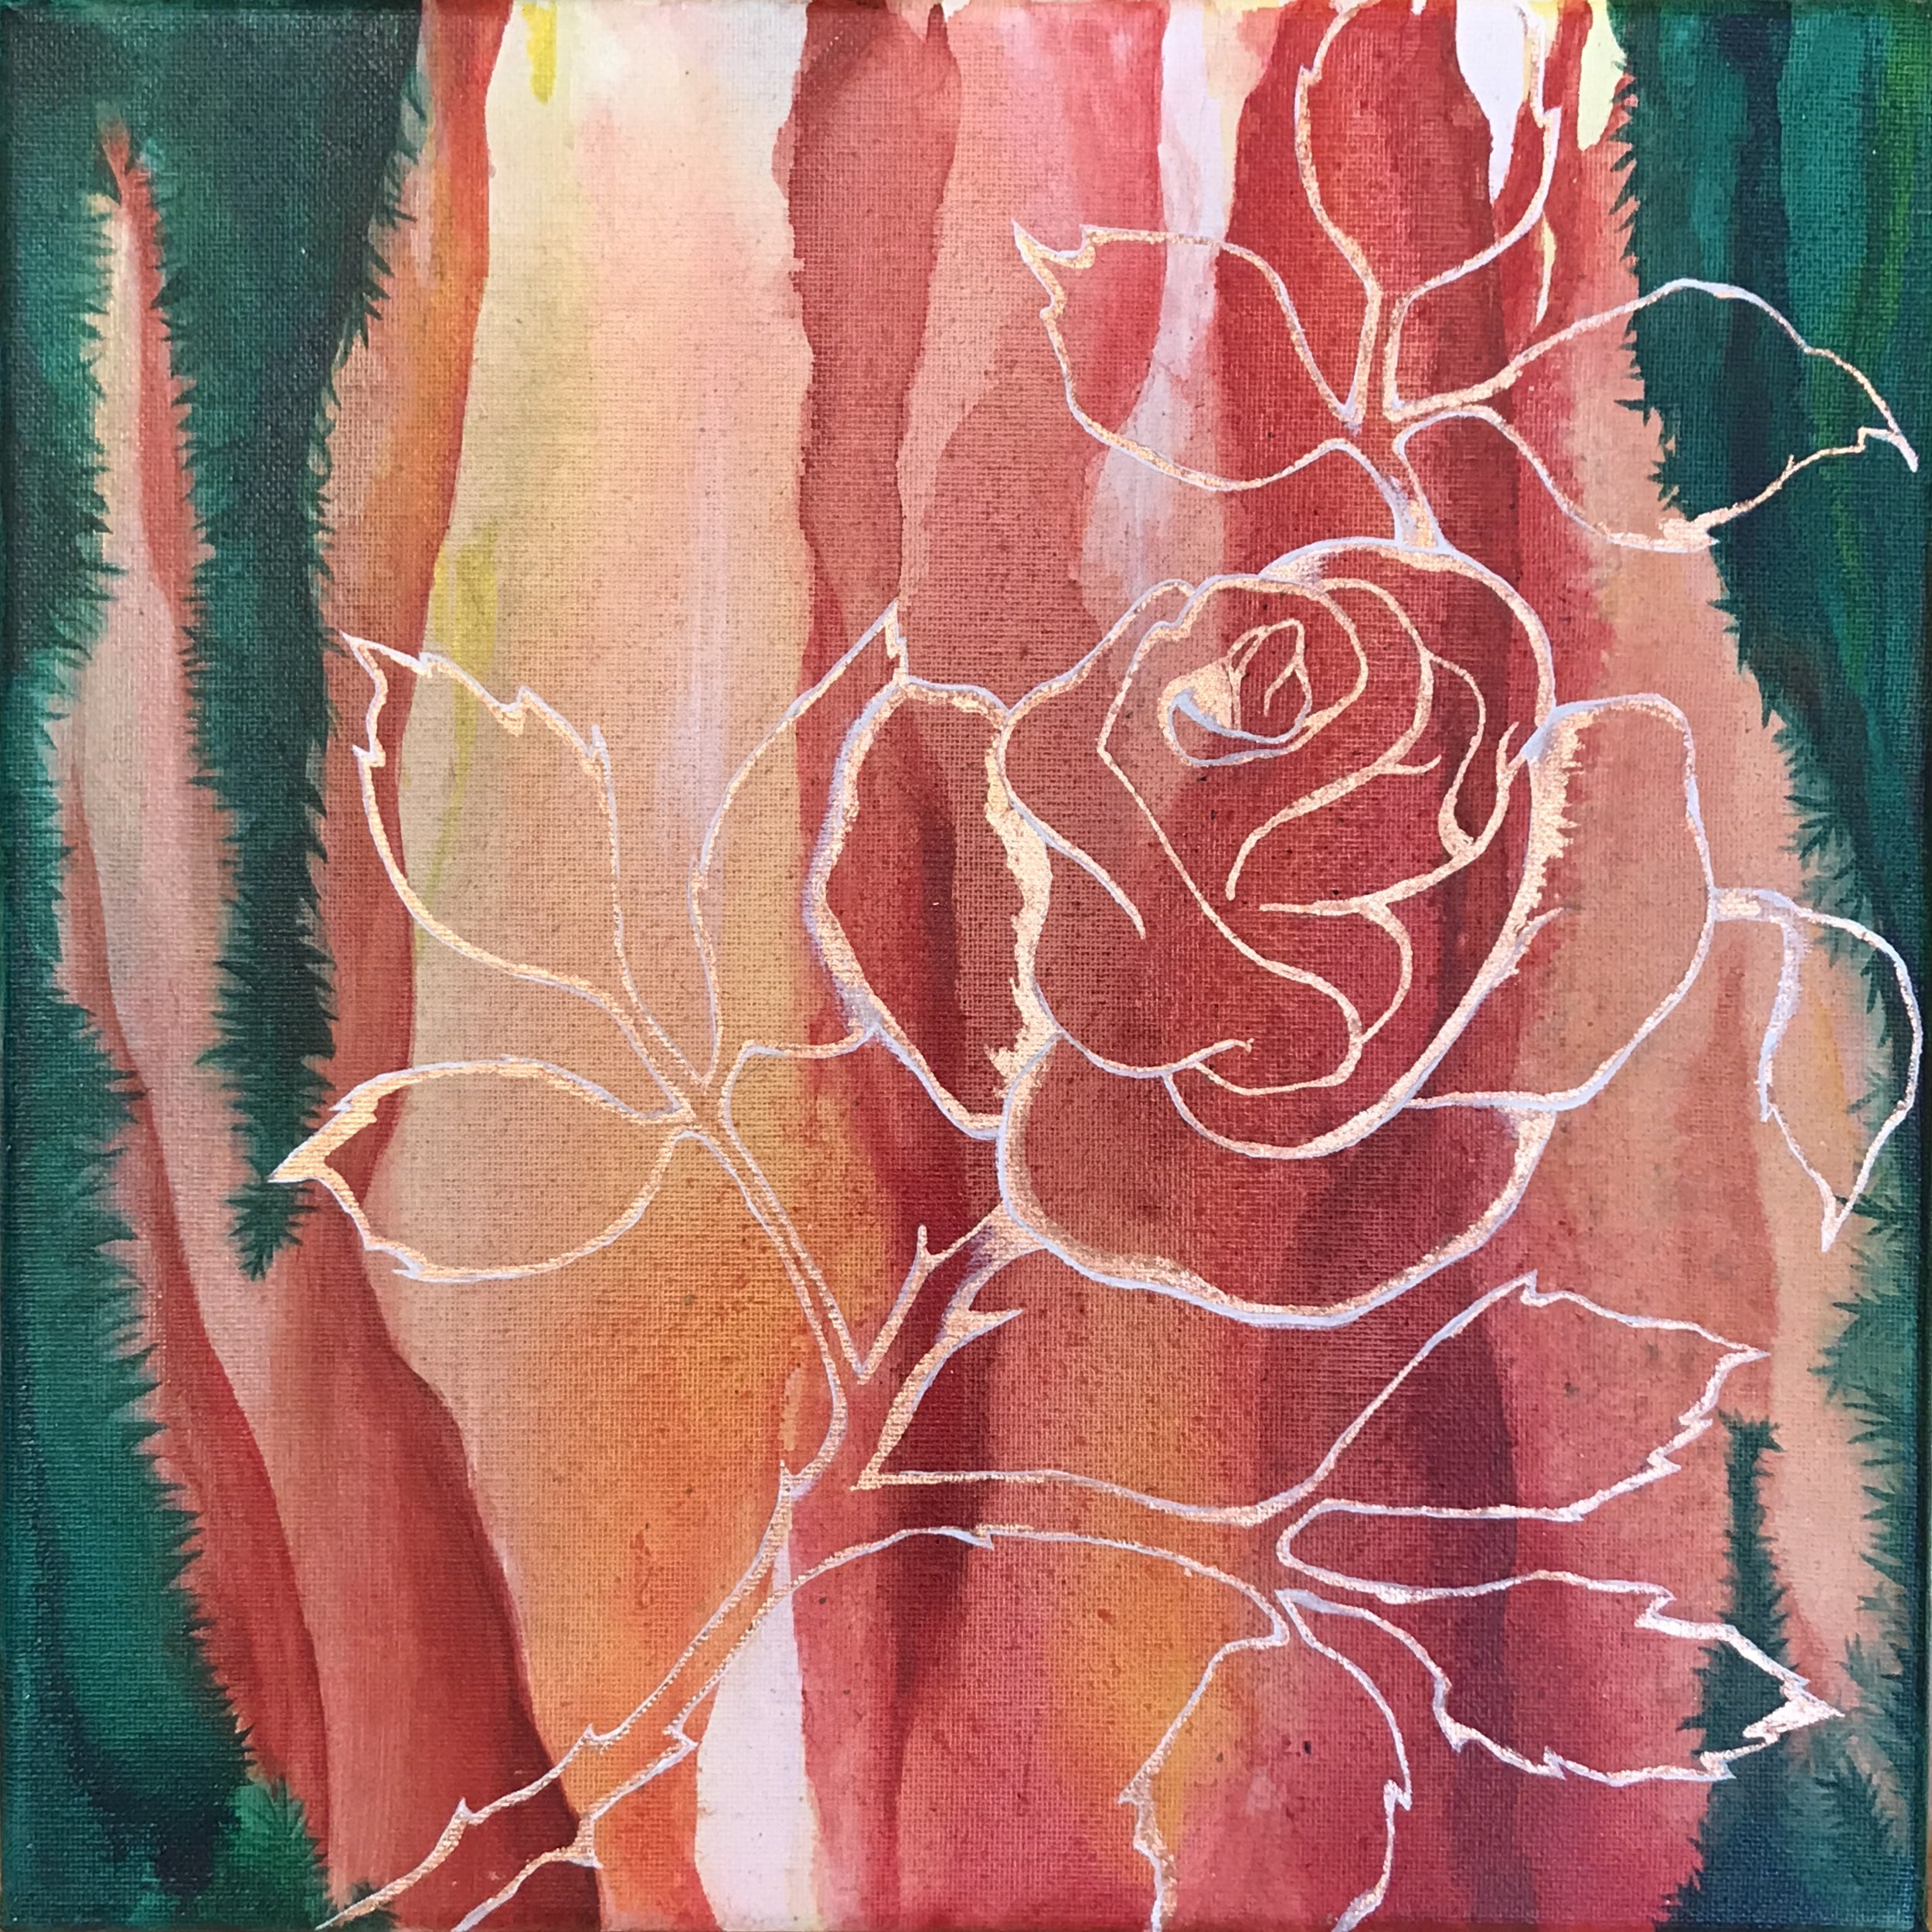 """Resin coated rose 12""""x12"""" on super sale for $100"""